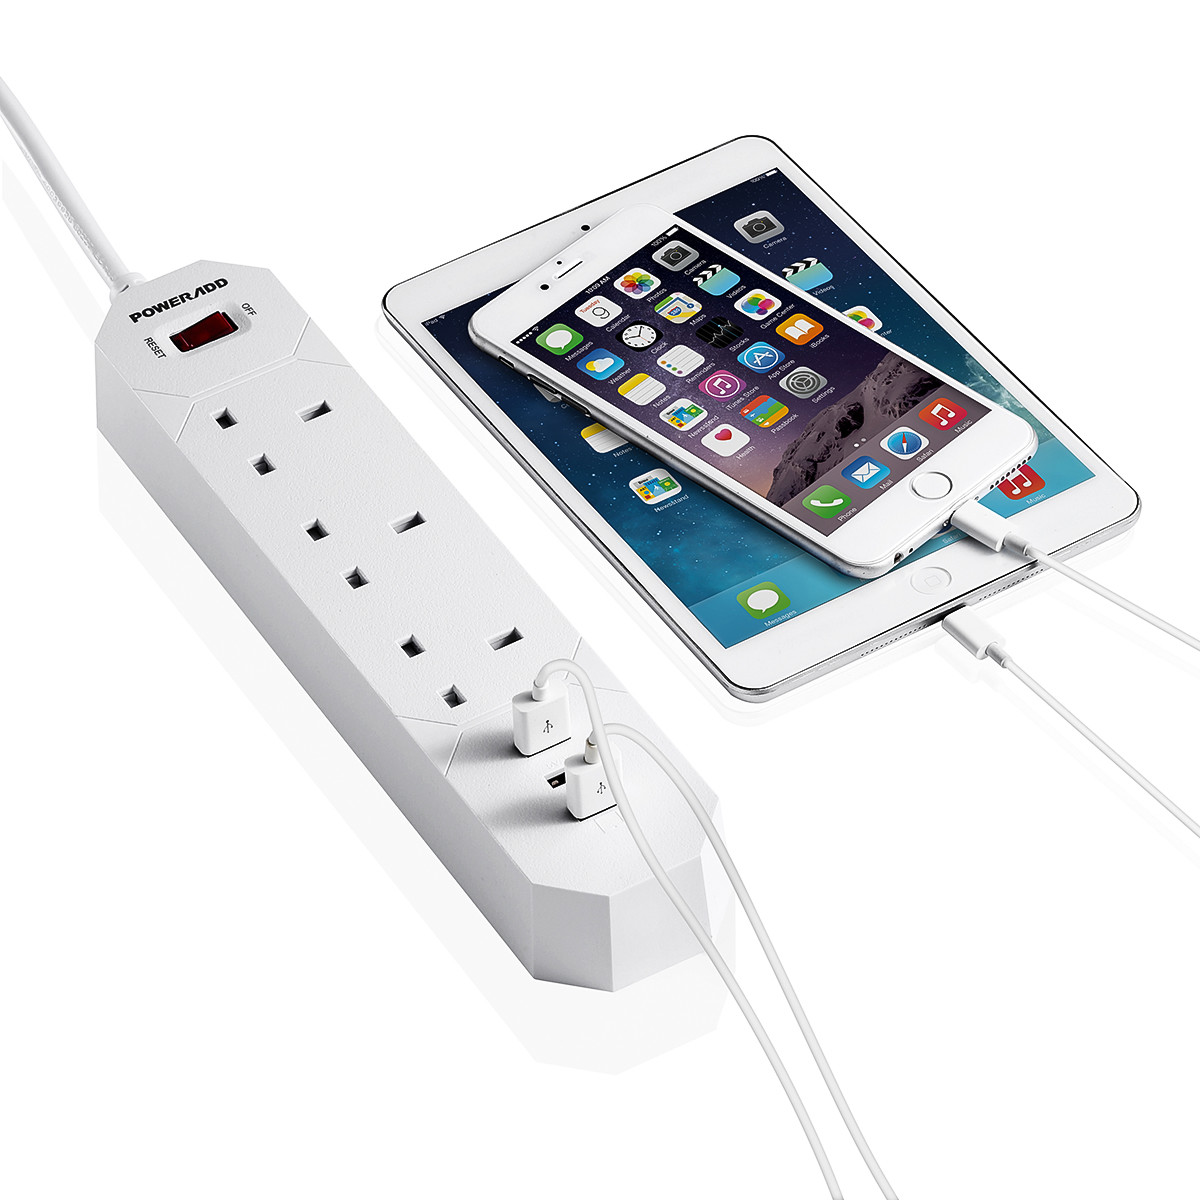 poweradd 1250w 3outlet power strip 3 usb ports surge protector with 5foot